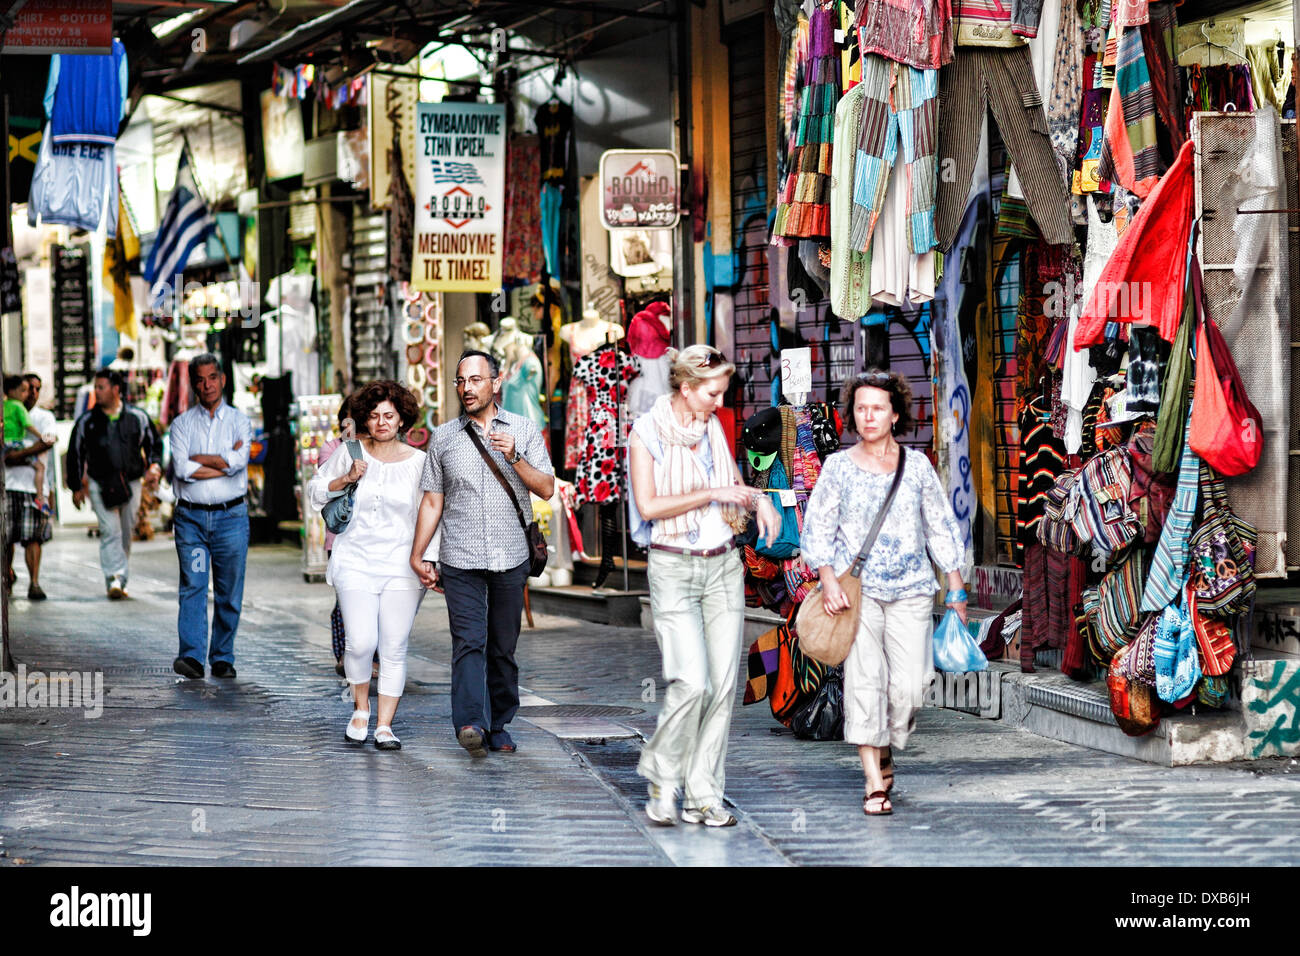 Souvenir shops in the streets of Athens, Greece - Stock Image